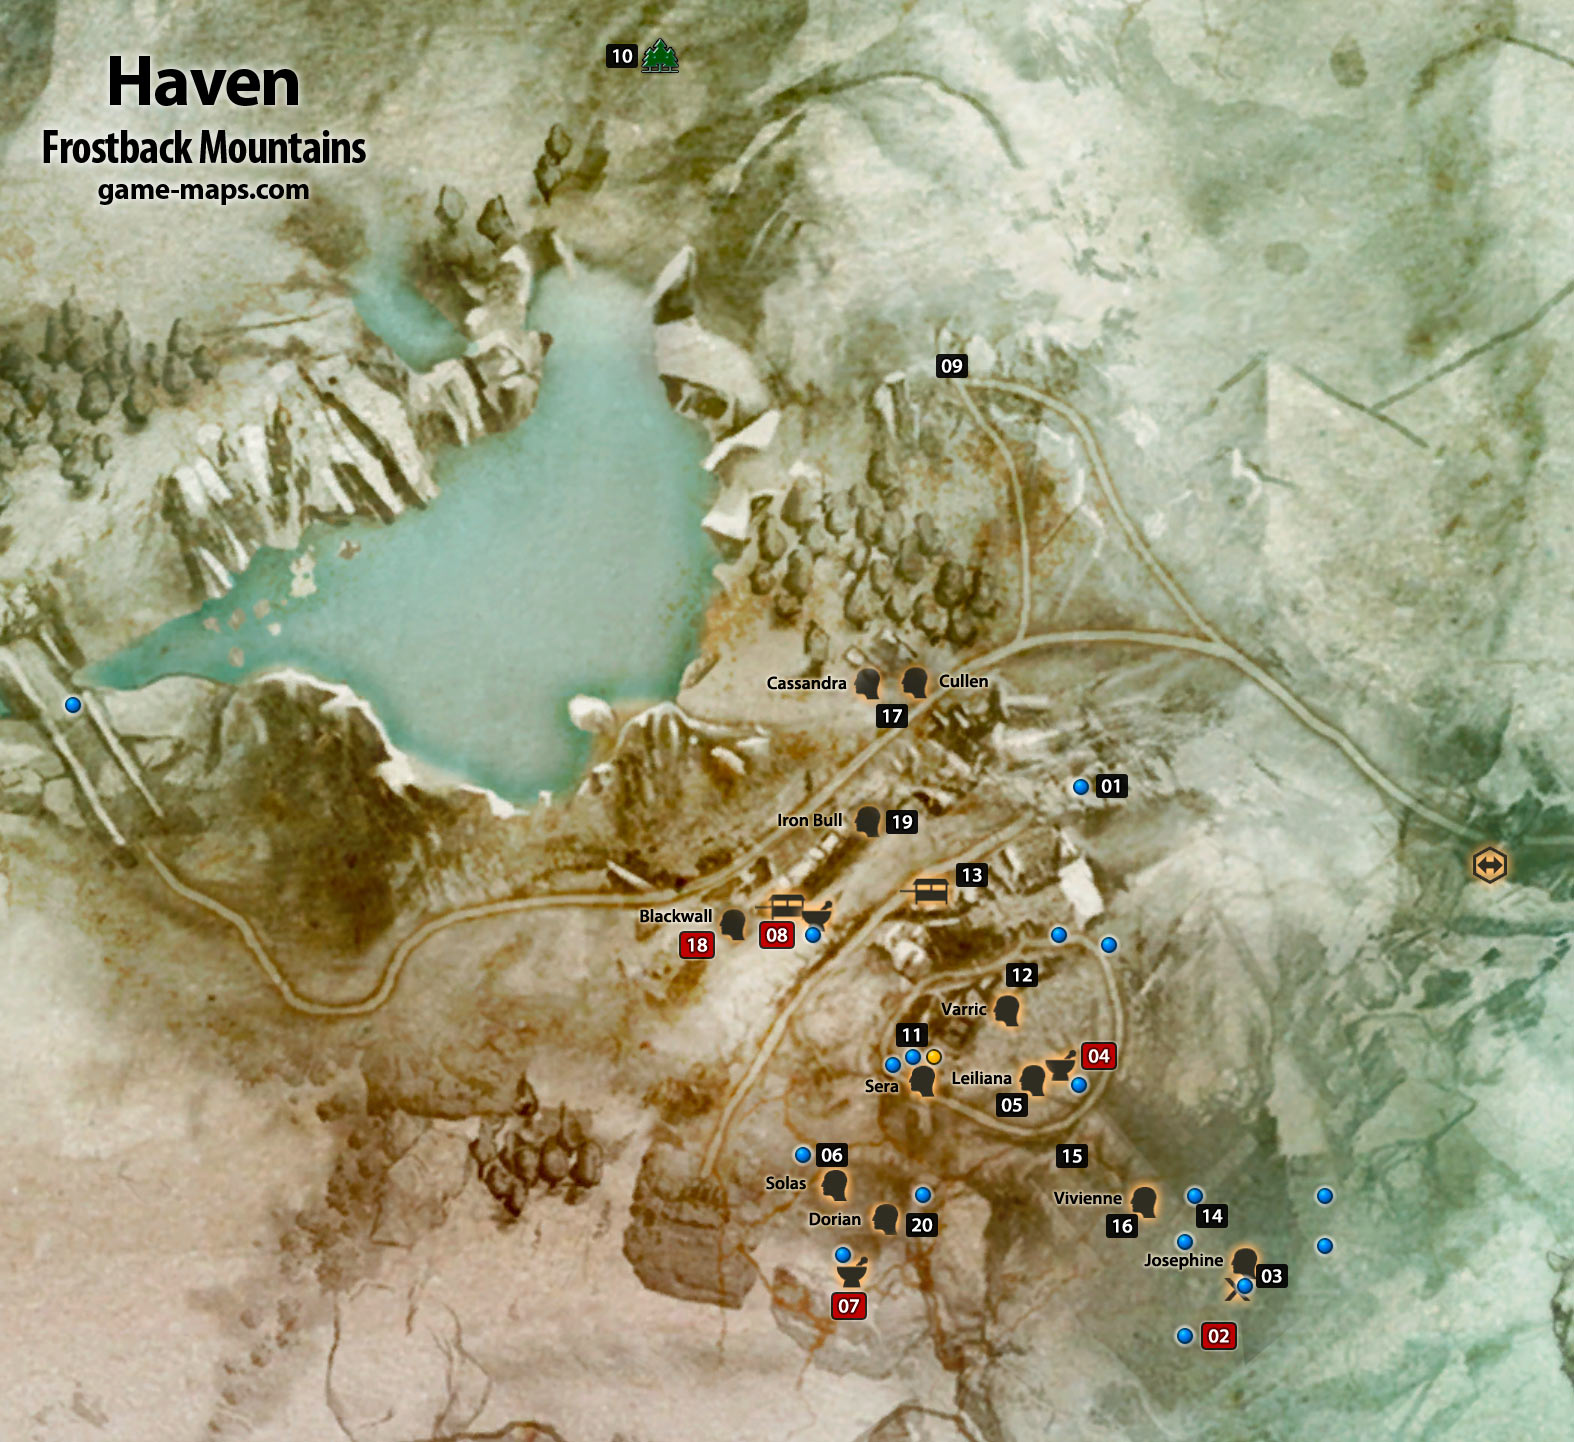 Frostback Mountains Haven Dragon Age Inquisition Game Maps Com